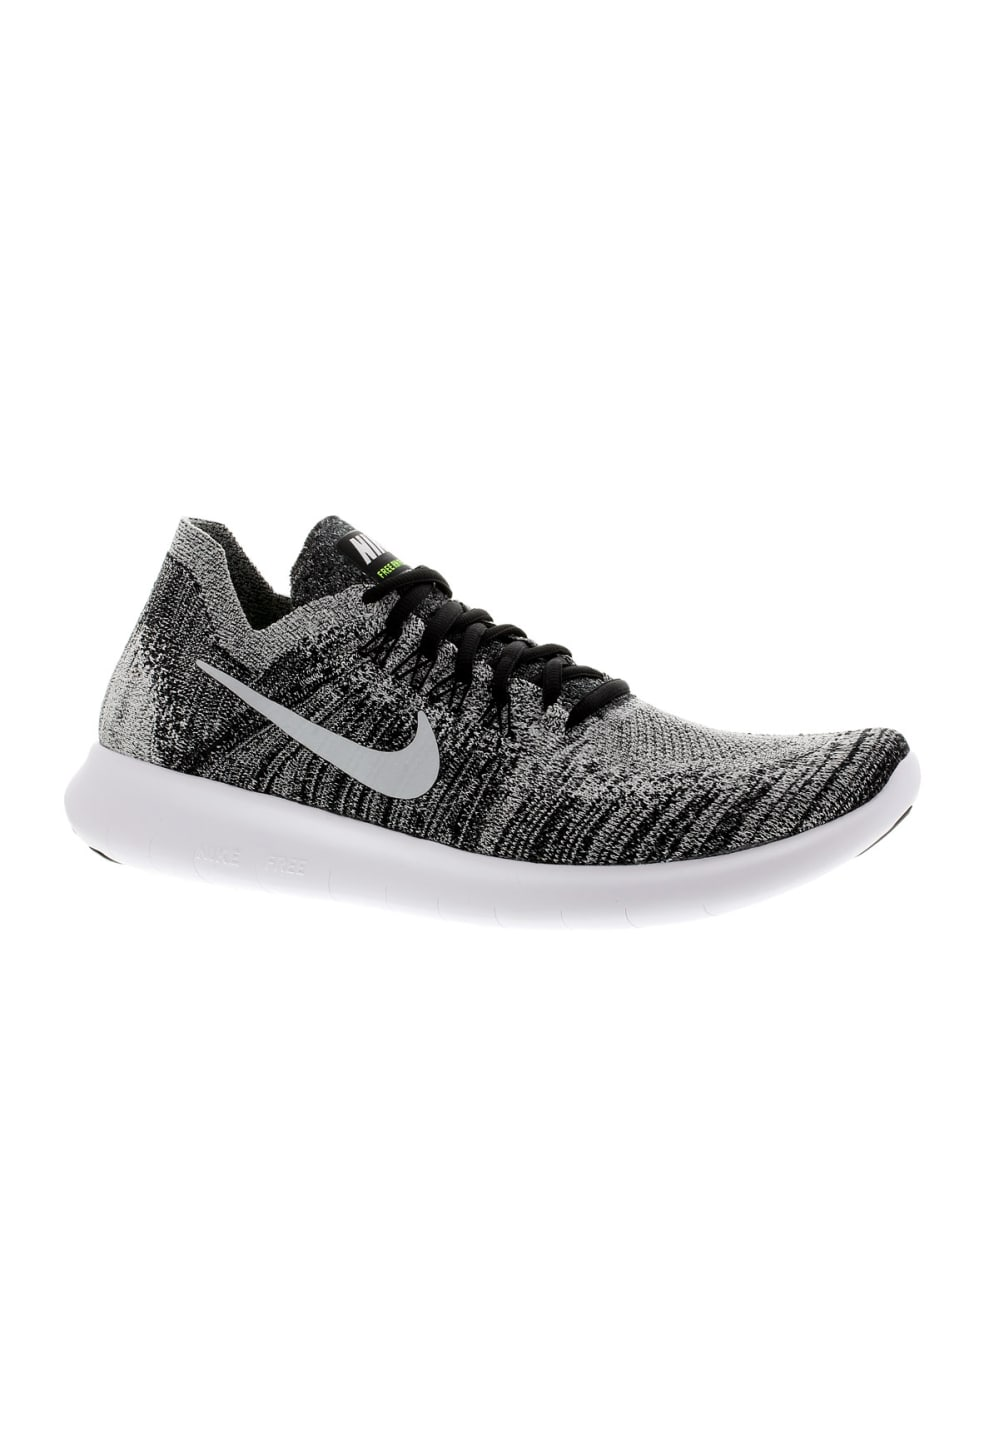 new concept 0fa46 03535 Next. Nike. Free RN Flyknit 2017 - Running ...